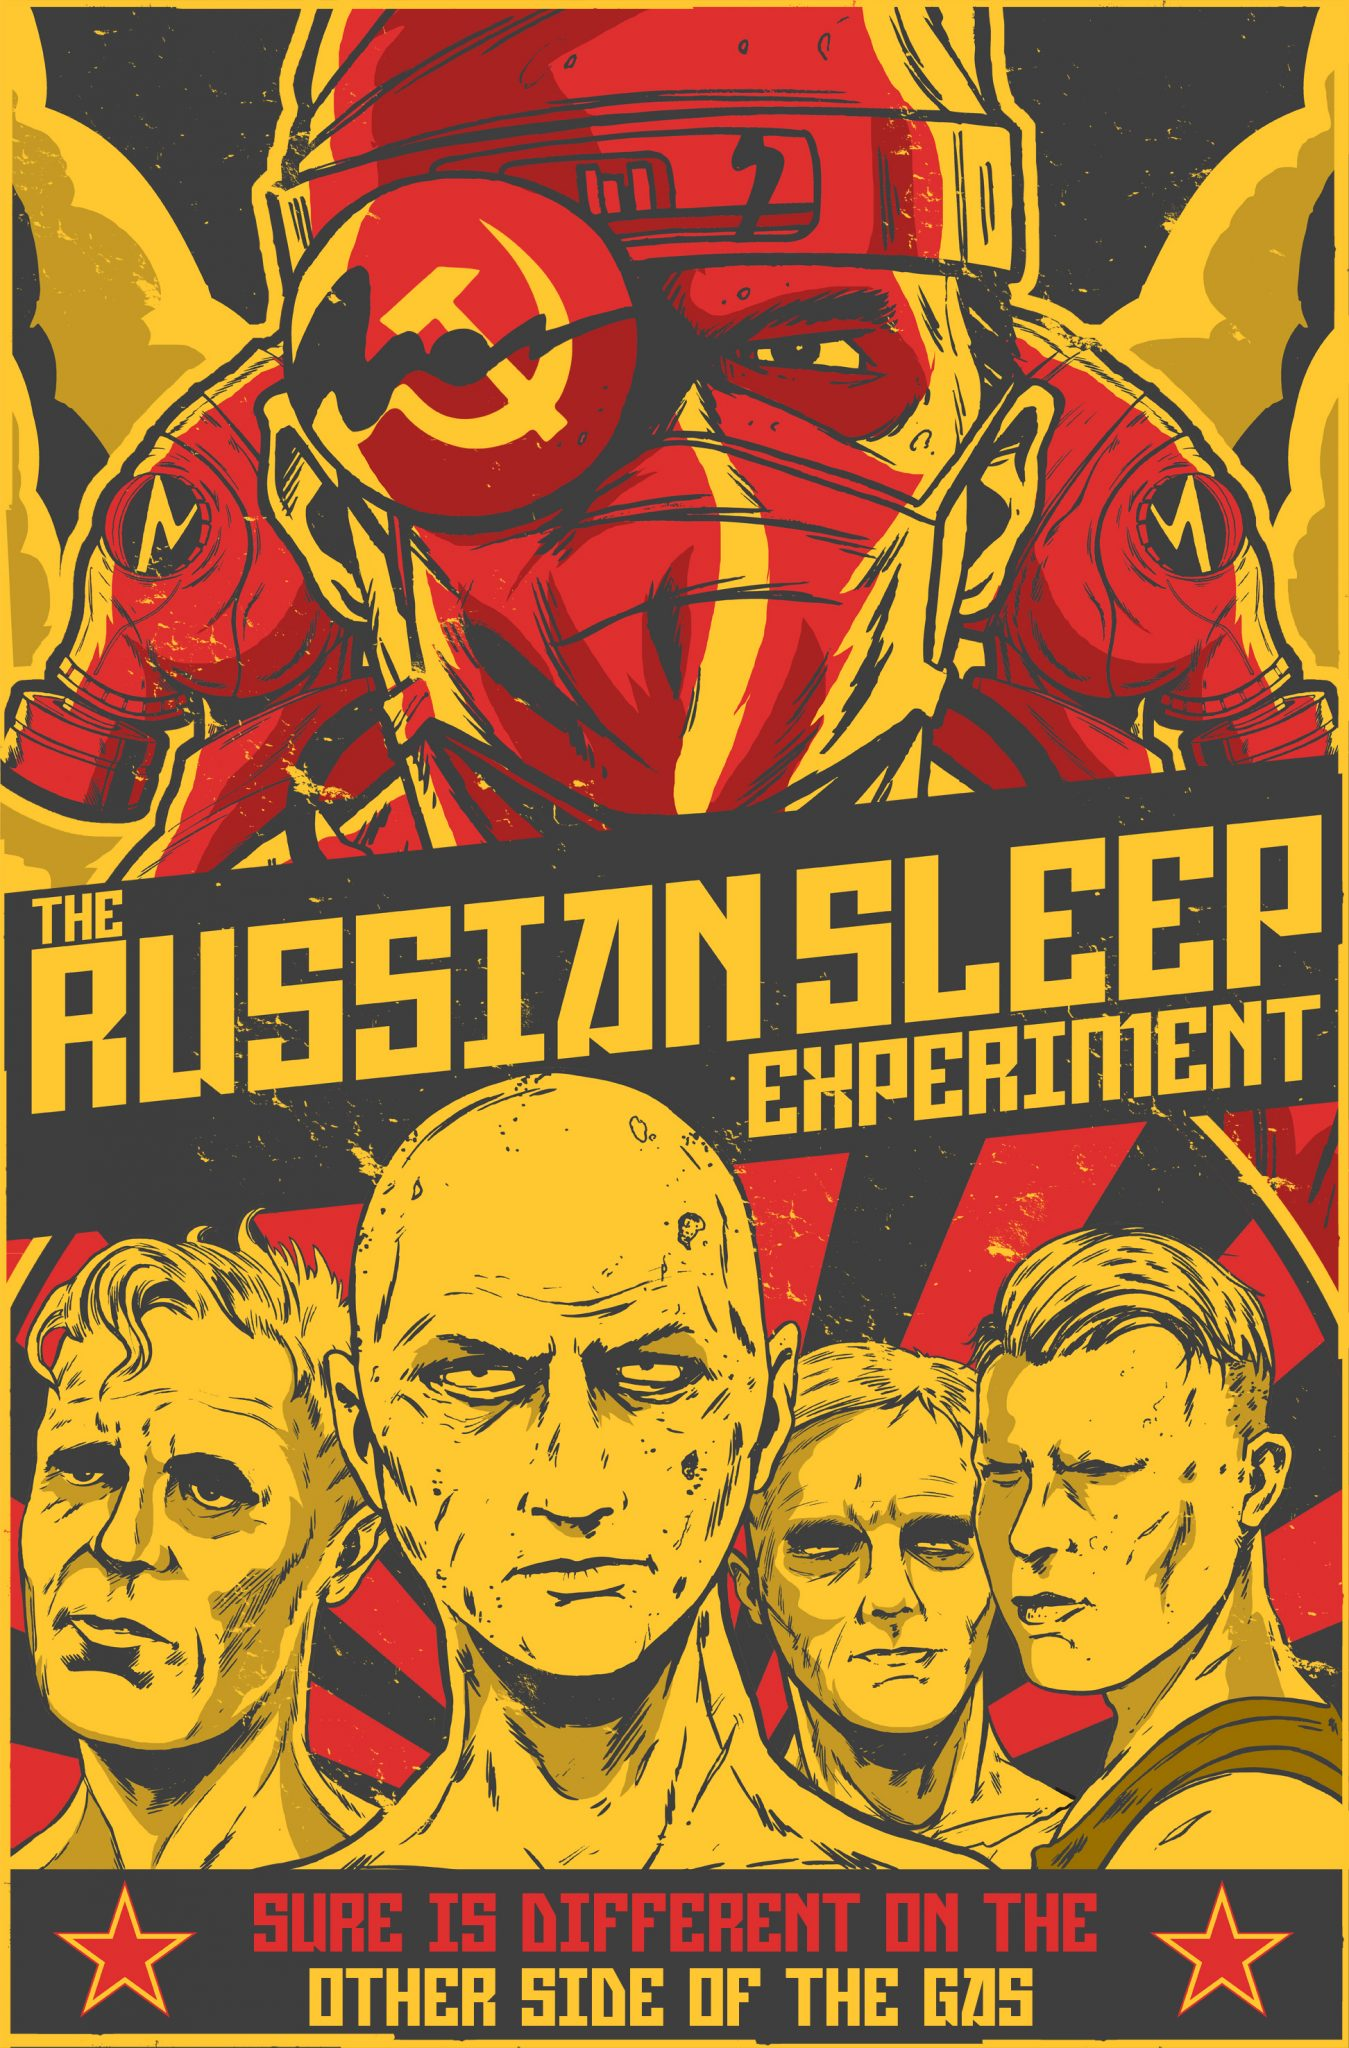 The Russian Sleep Experiment Creepypasta/Novella Now a Short